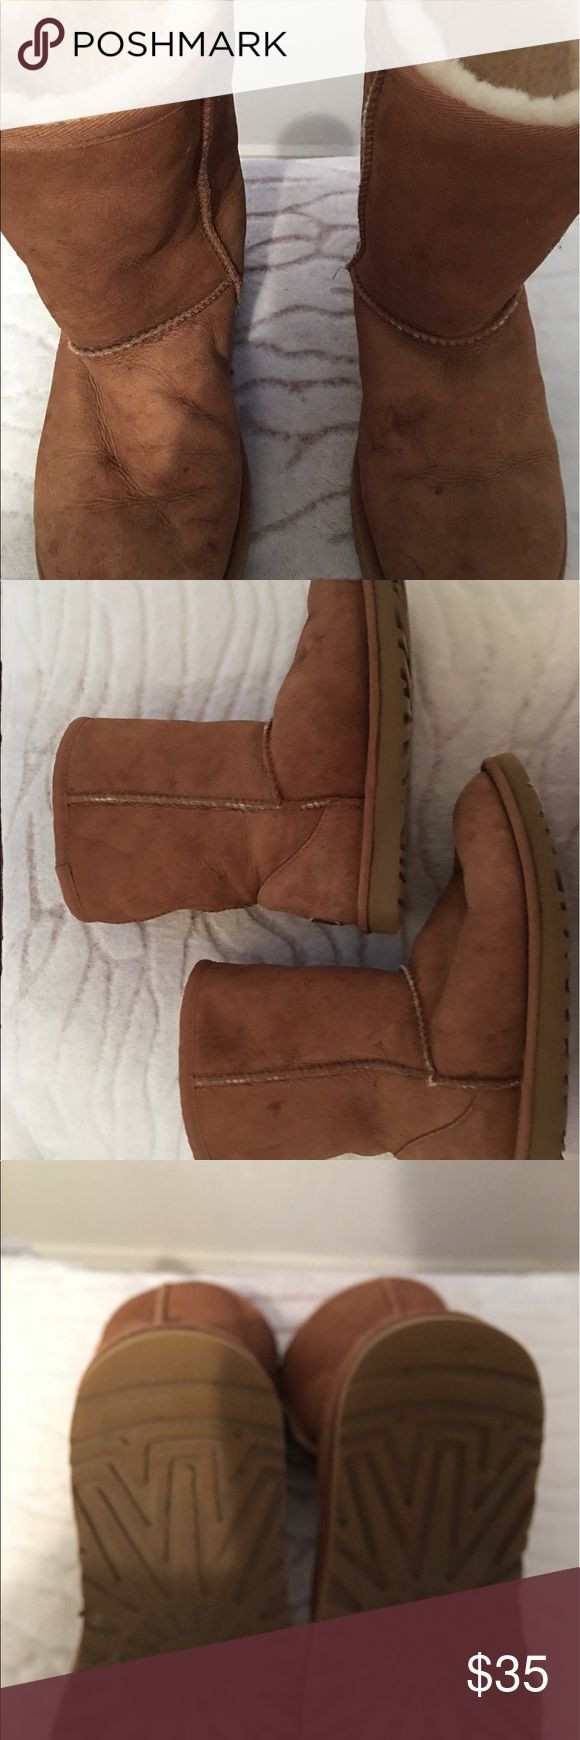 Women's Ugg Boots. They are a chestnut color. Very nice good condition boots. UGG Shoes Ankle Boots & Booties